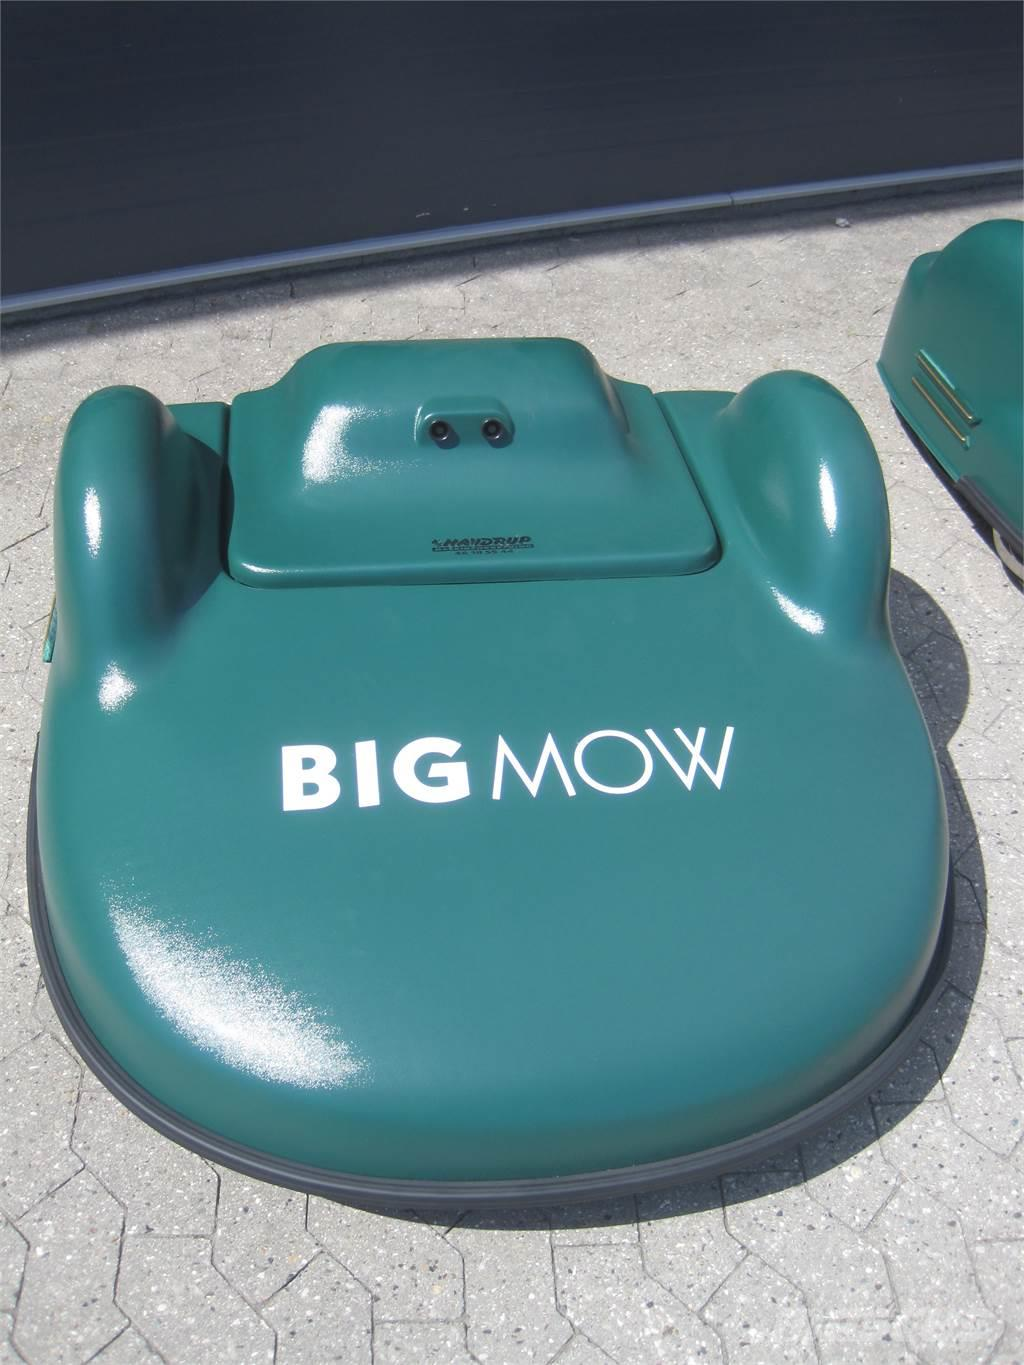 [Other] BIGMOW CLASSIC